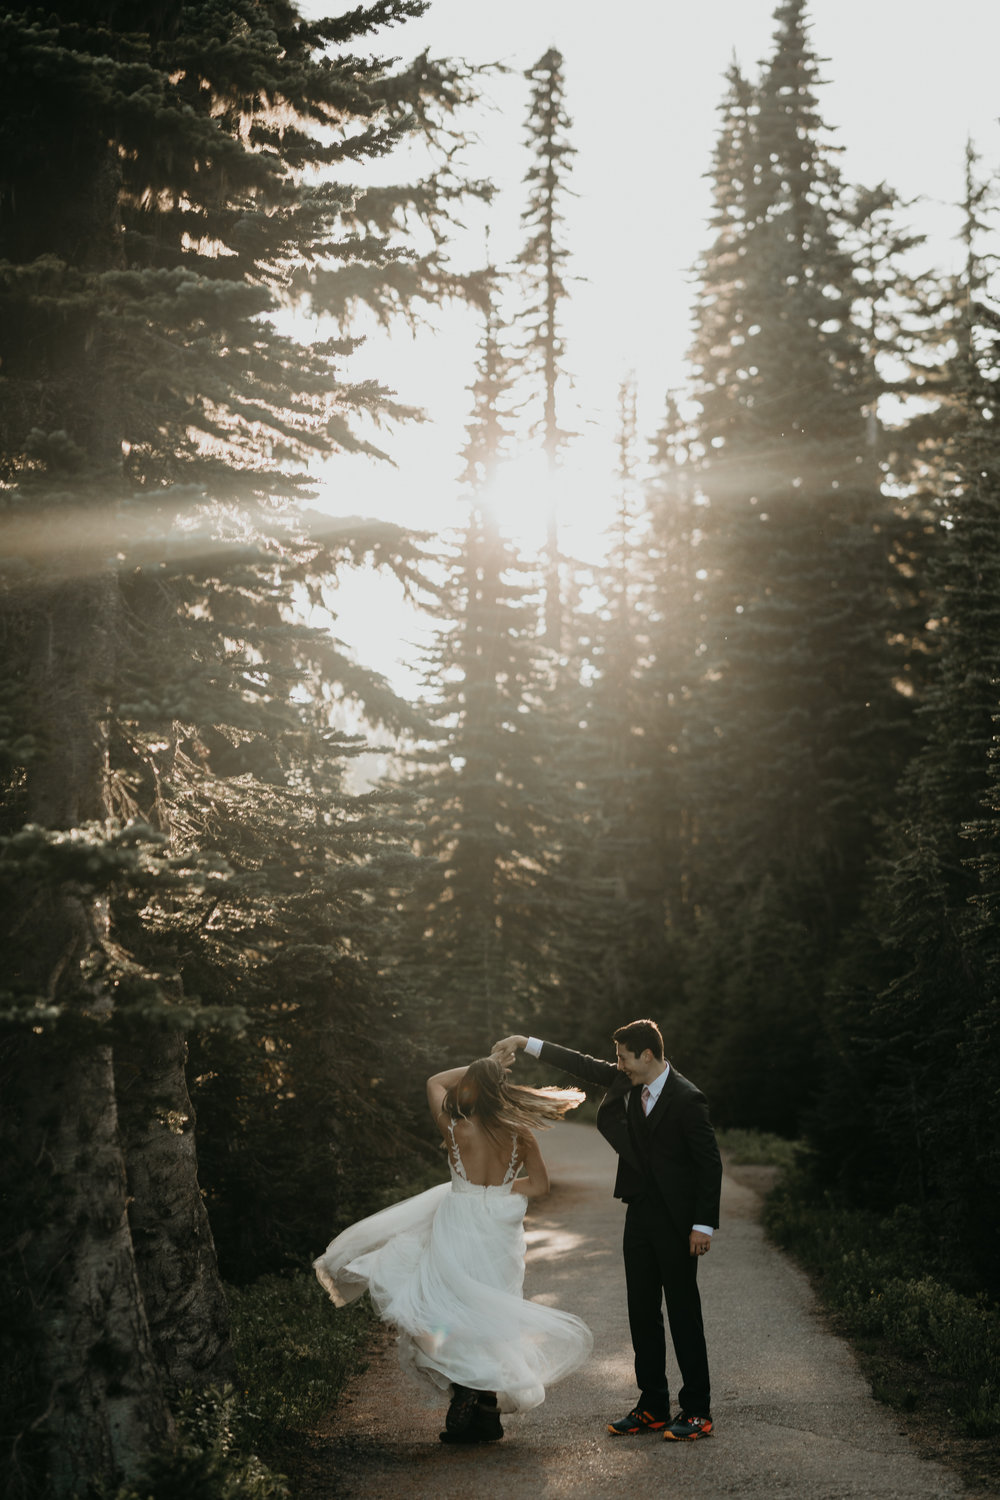 Nicole-Daacke-Photography-Mt-Rainier-elopement-photographer-washington-mountain-epic-wedding-photography-wildflowers-at-rainier-pine-tree-cloudy-summer-day-at-mountain-rainier-25.jpg